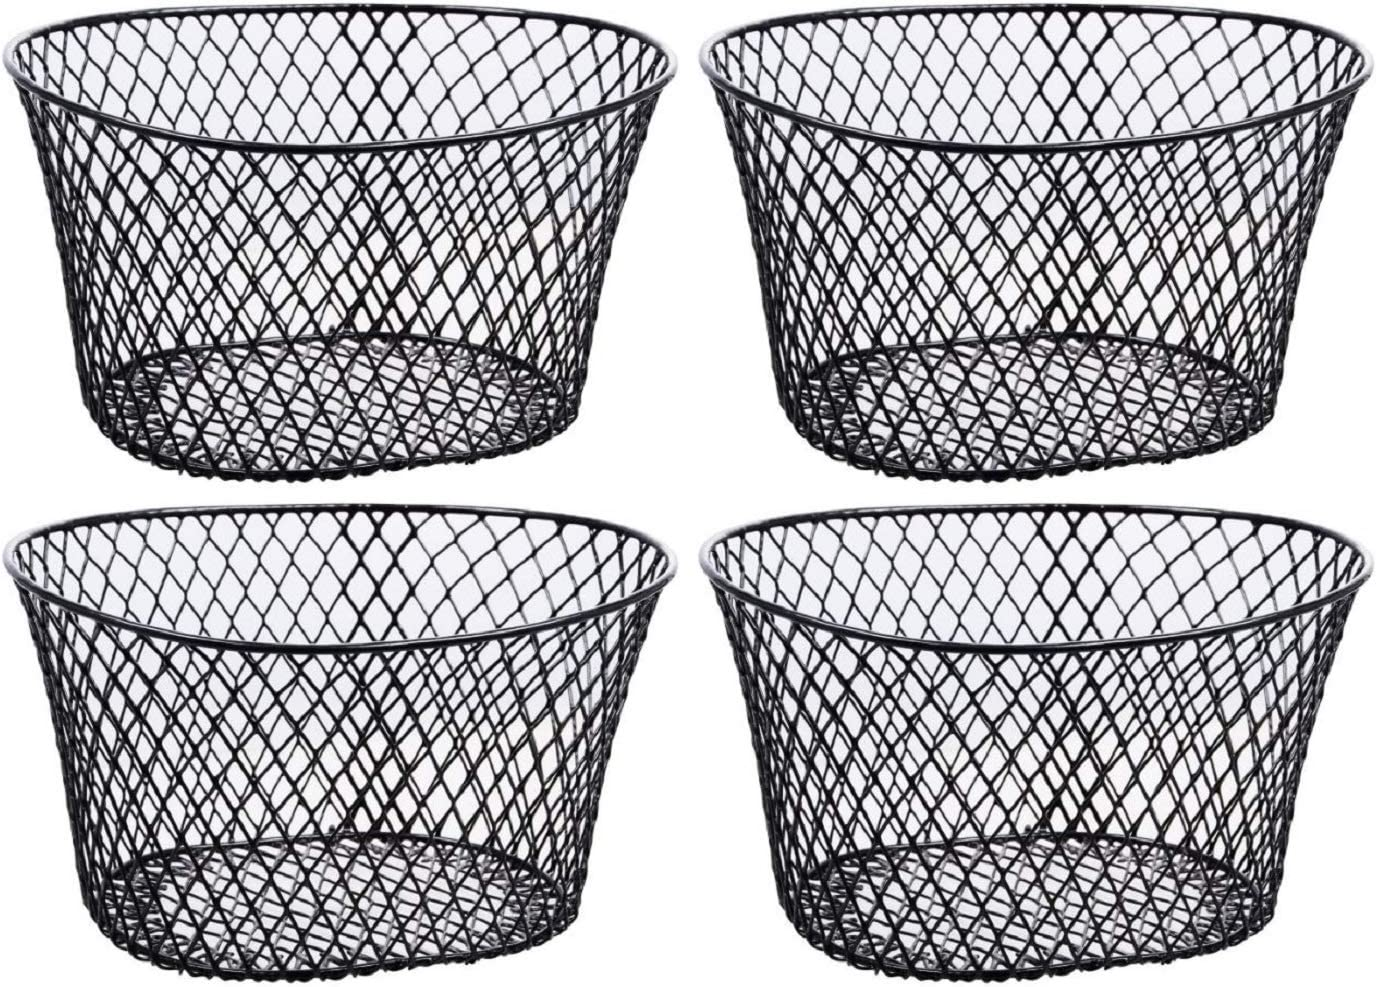 Amazon Com Small Metal Rectangular Oval And Round Wire Baskets With Or Without Handles Black And White 4 Ct Sets Oval Black Without Handles Kitchen Dining